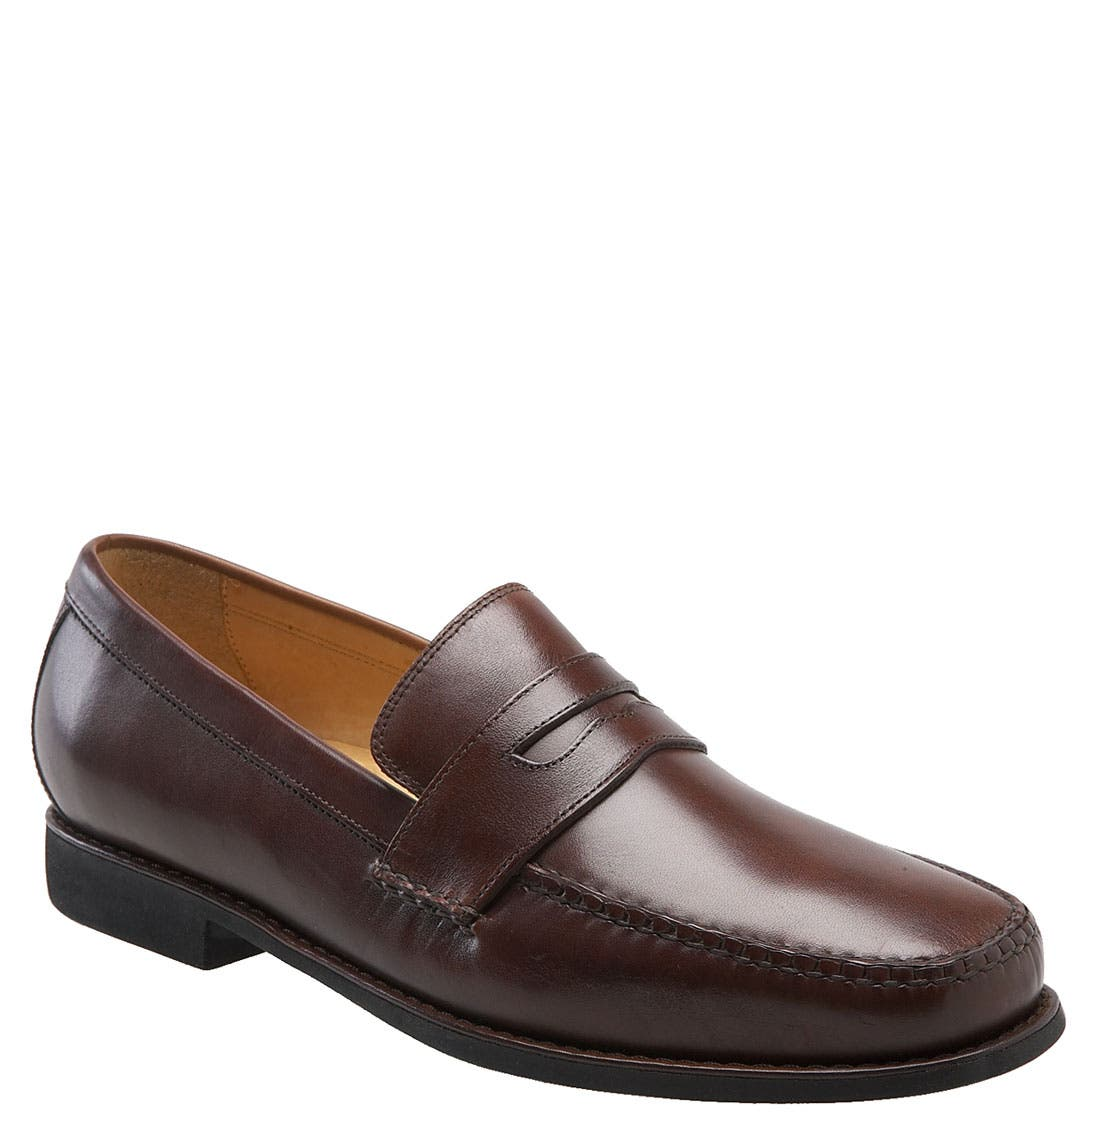 Main Image - Johnston & Murphy 'Ainsworth' Penny Loafer (Men)